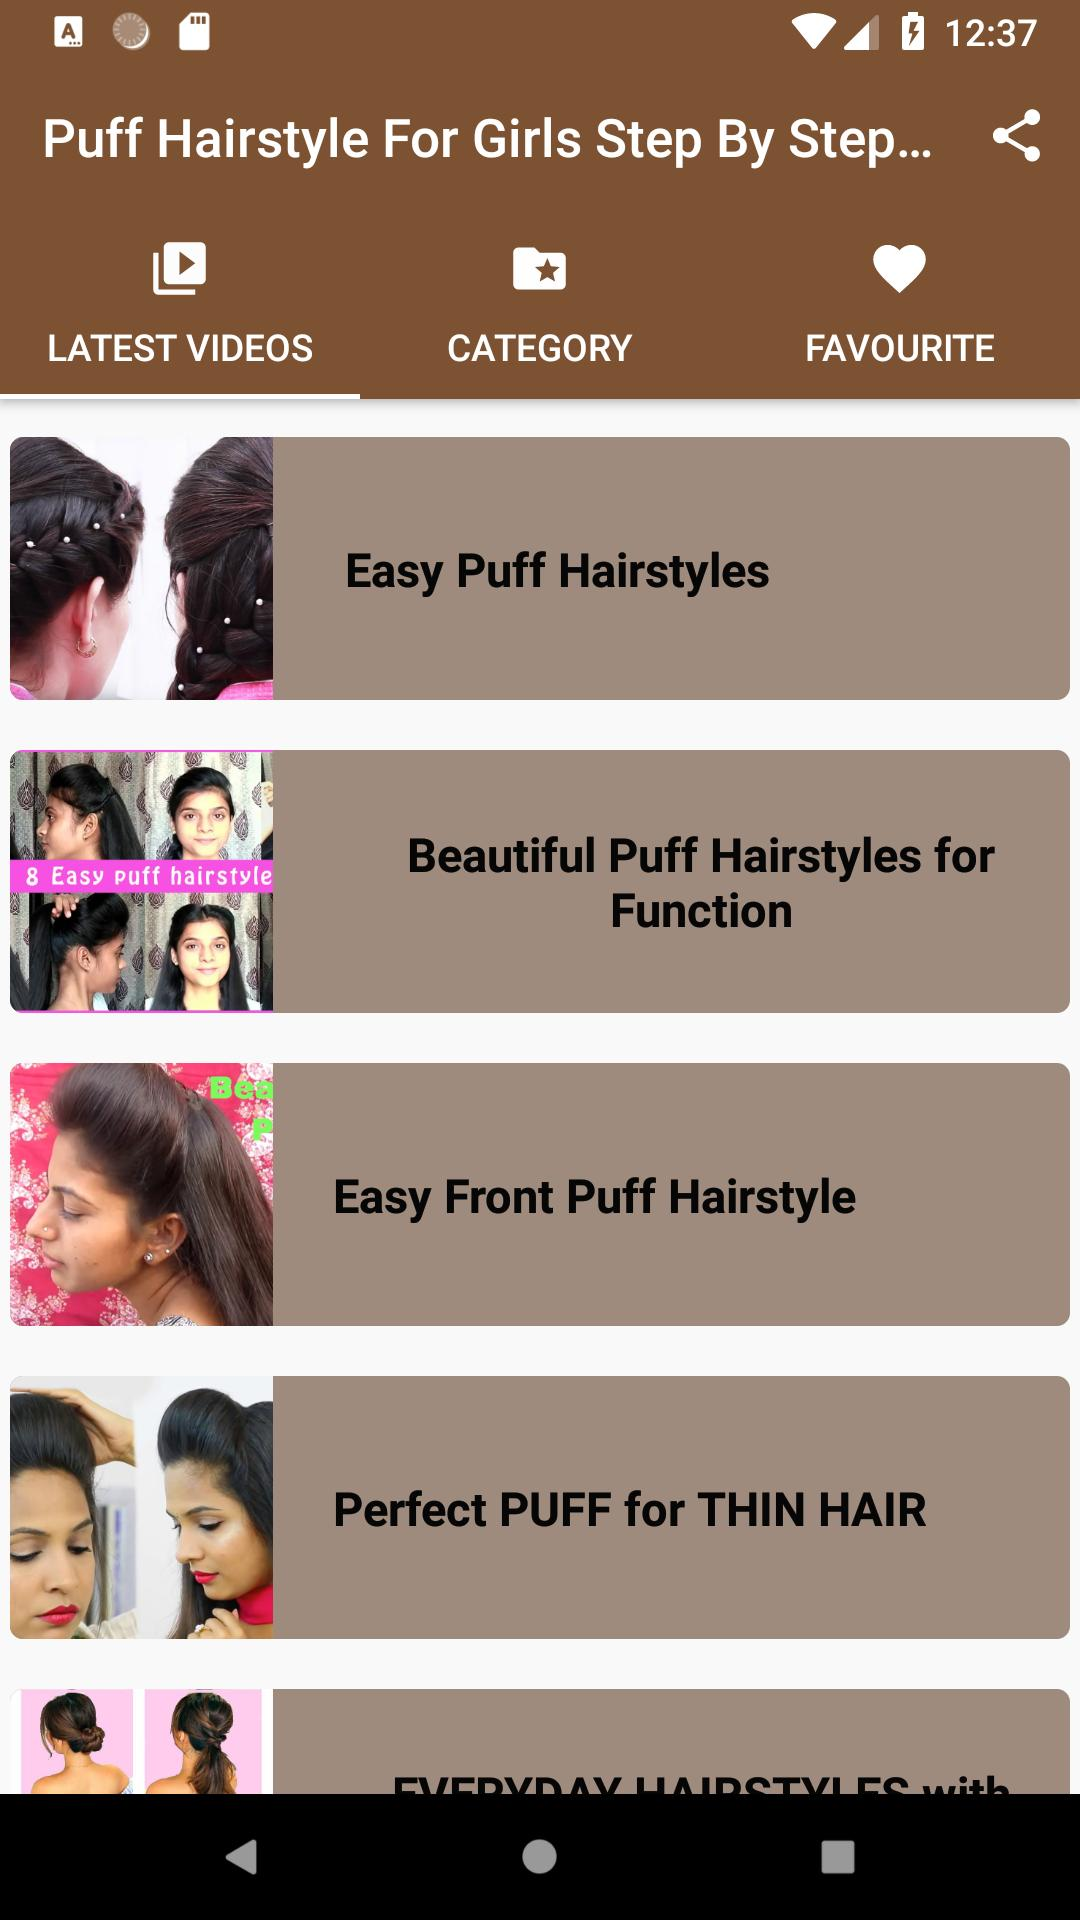 Puff Hairstyle For Girls Step By Step App Videos For Android